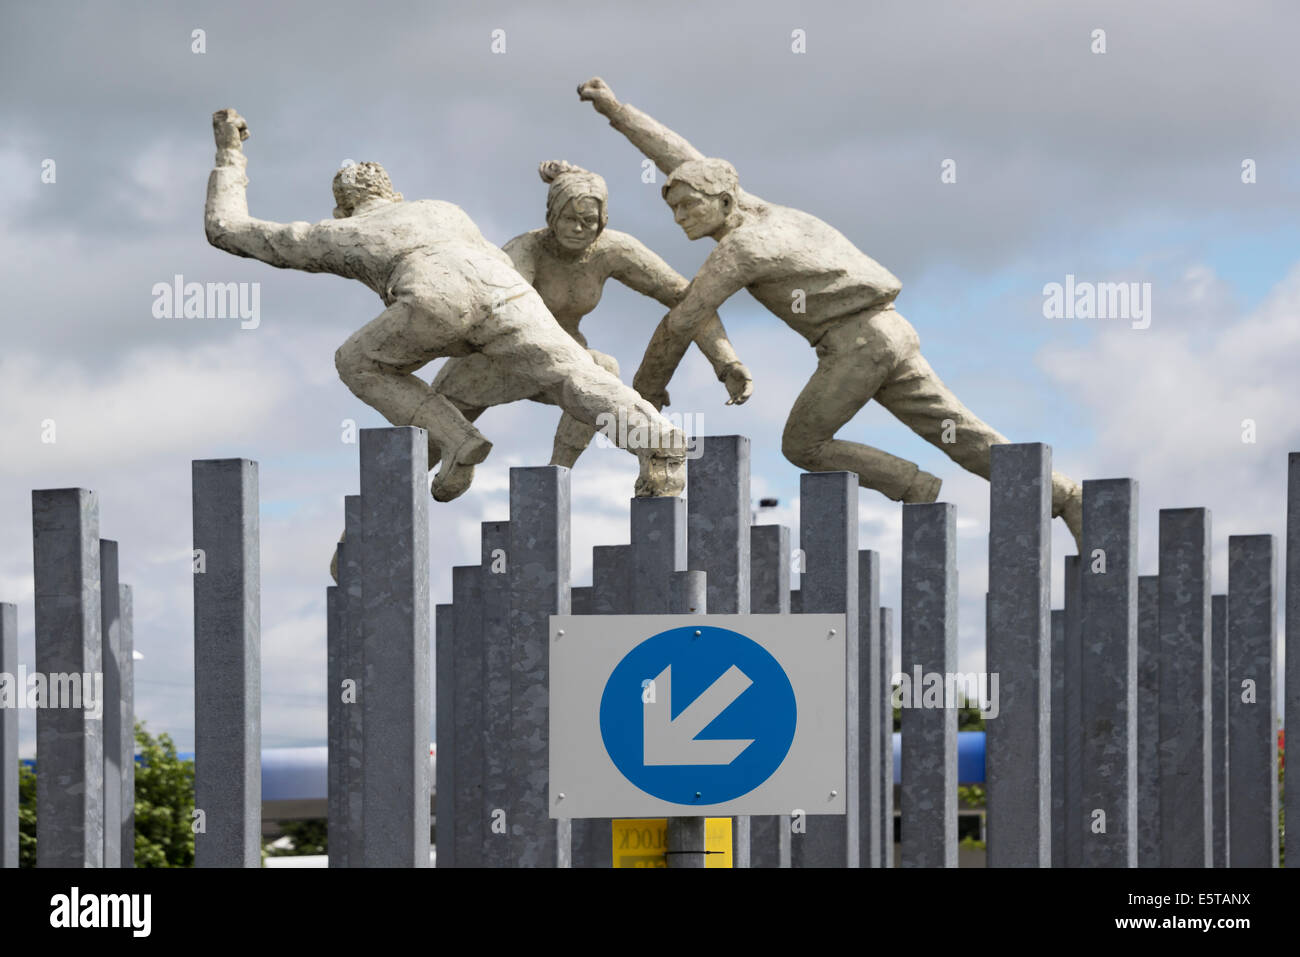 David Annand's 'Reel of three' sculpture Dalmarnock Road roundabout Glasgow - Stock Image